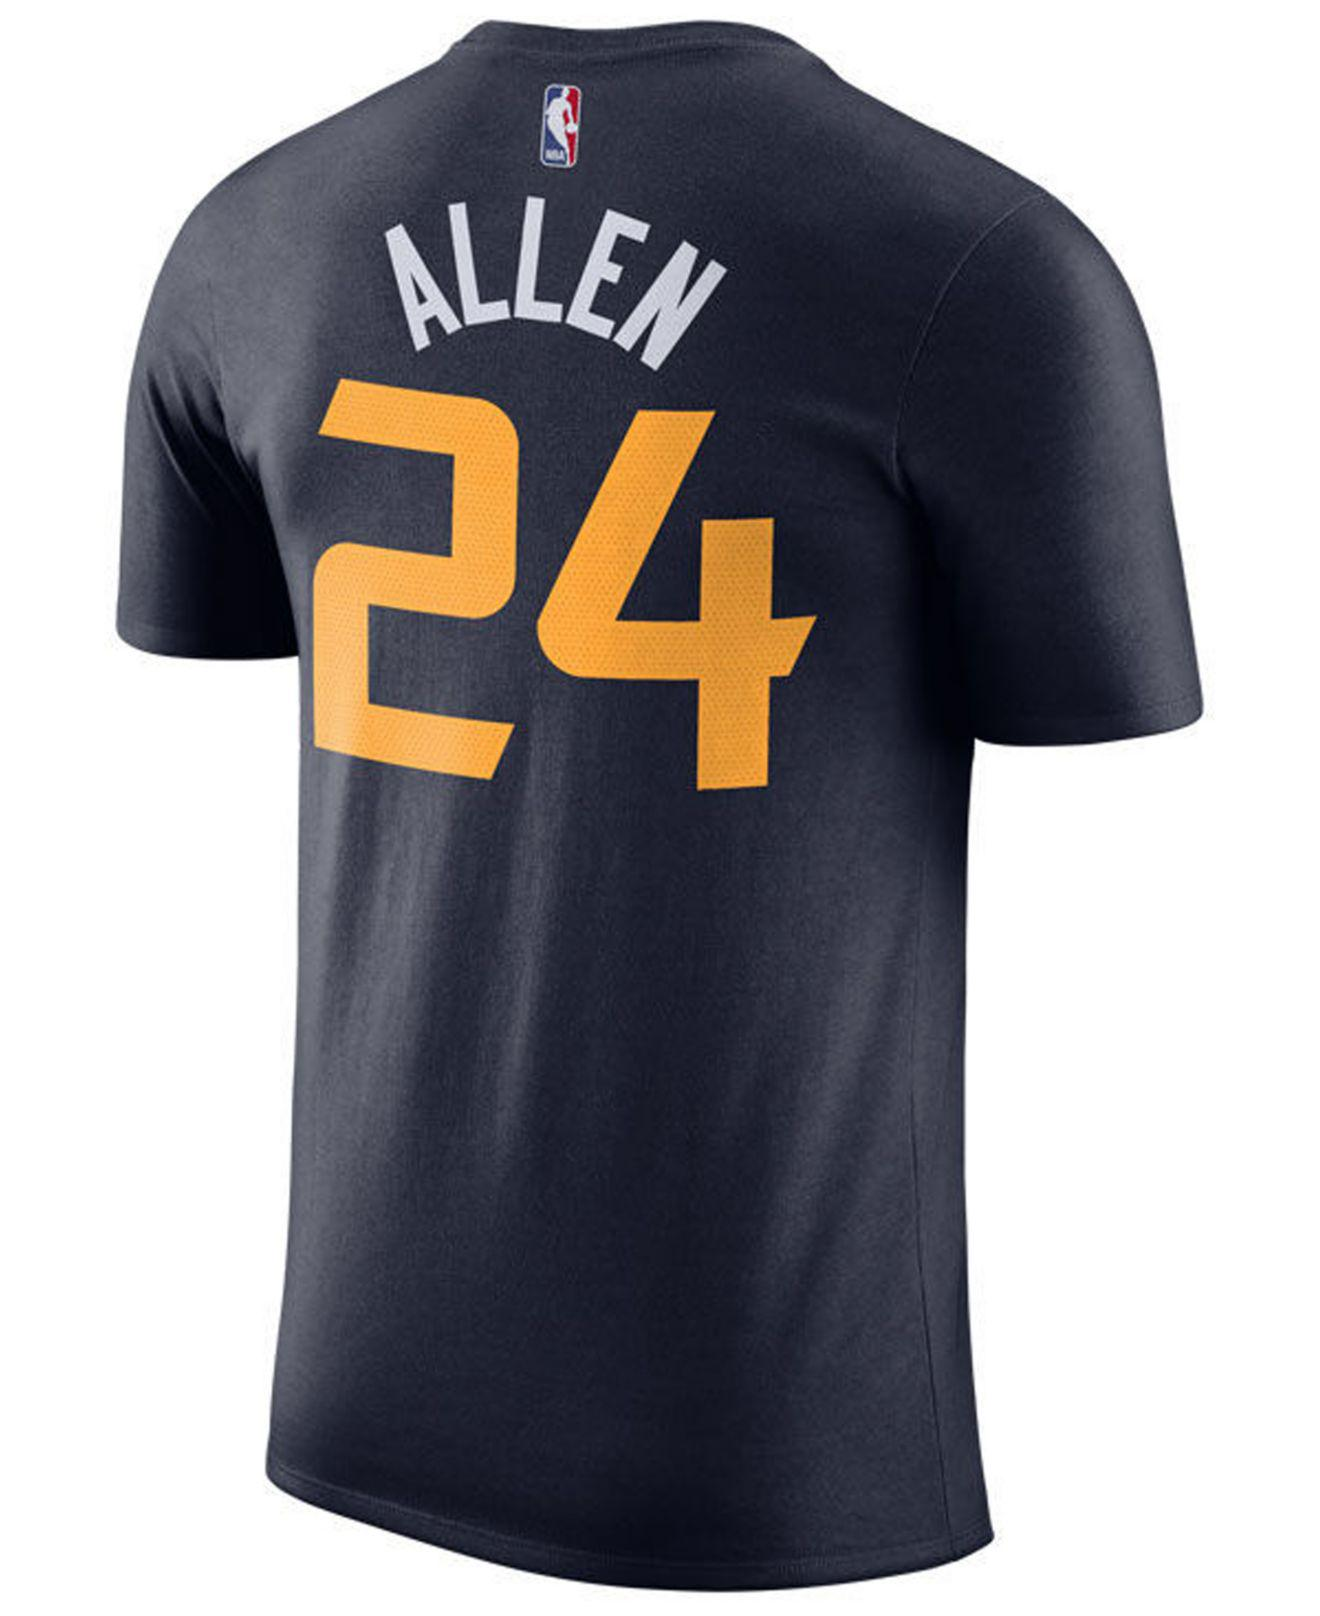 fa5e535a208 Nike Grayson Allen Utah Jazz Icon Player T-shirt in Blue for Men - Lyst